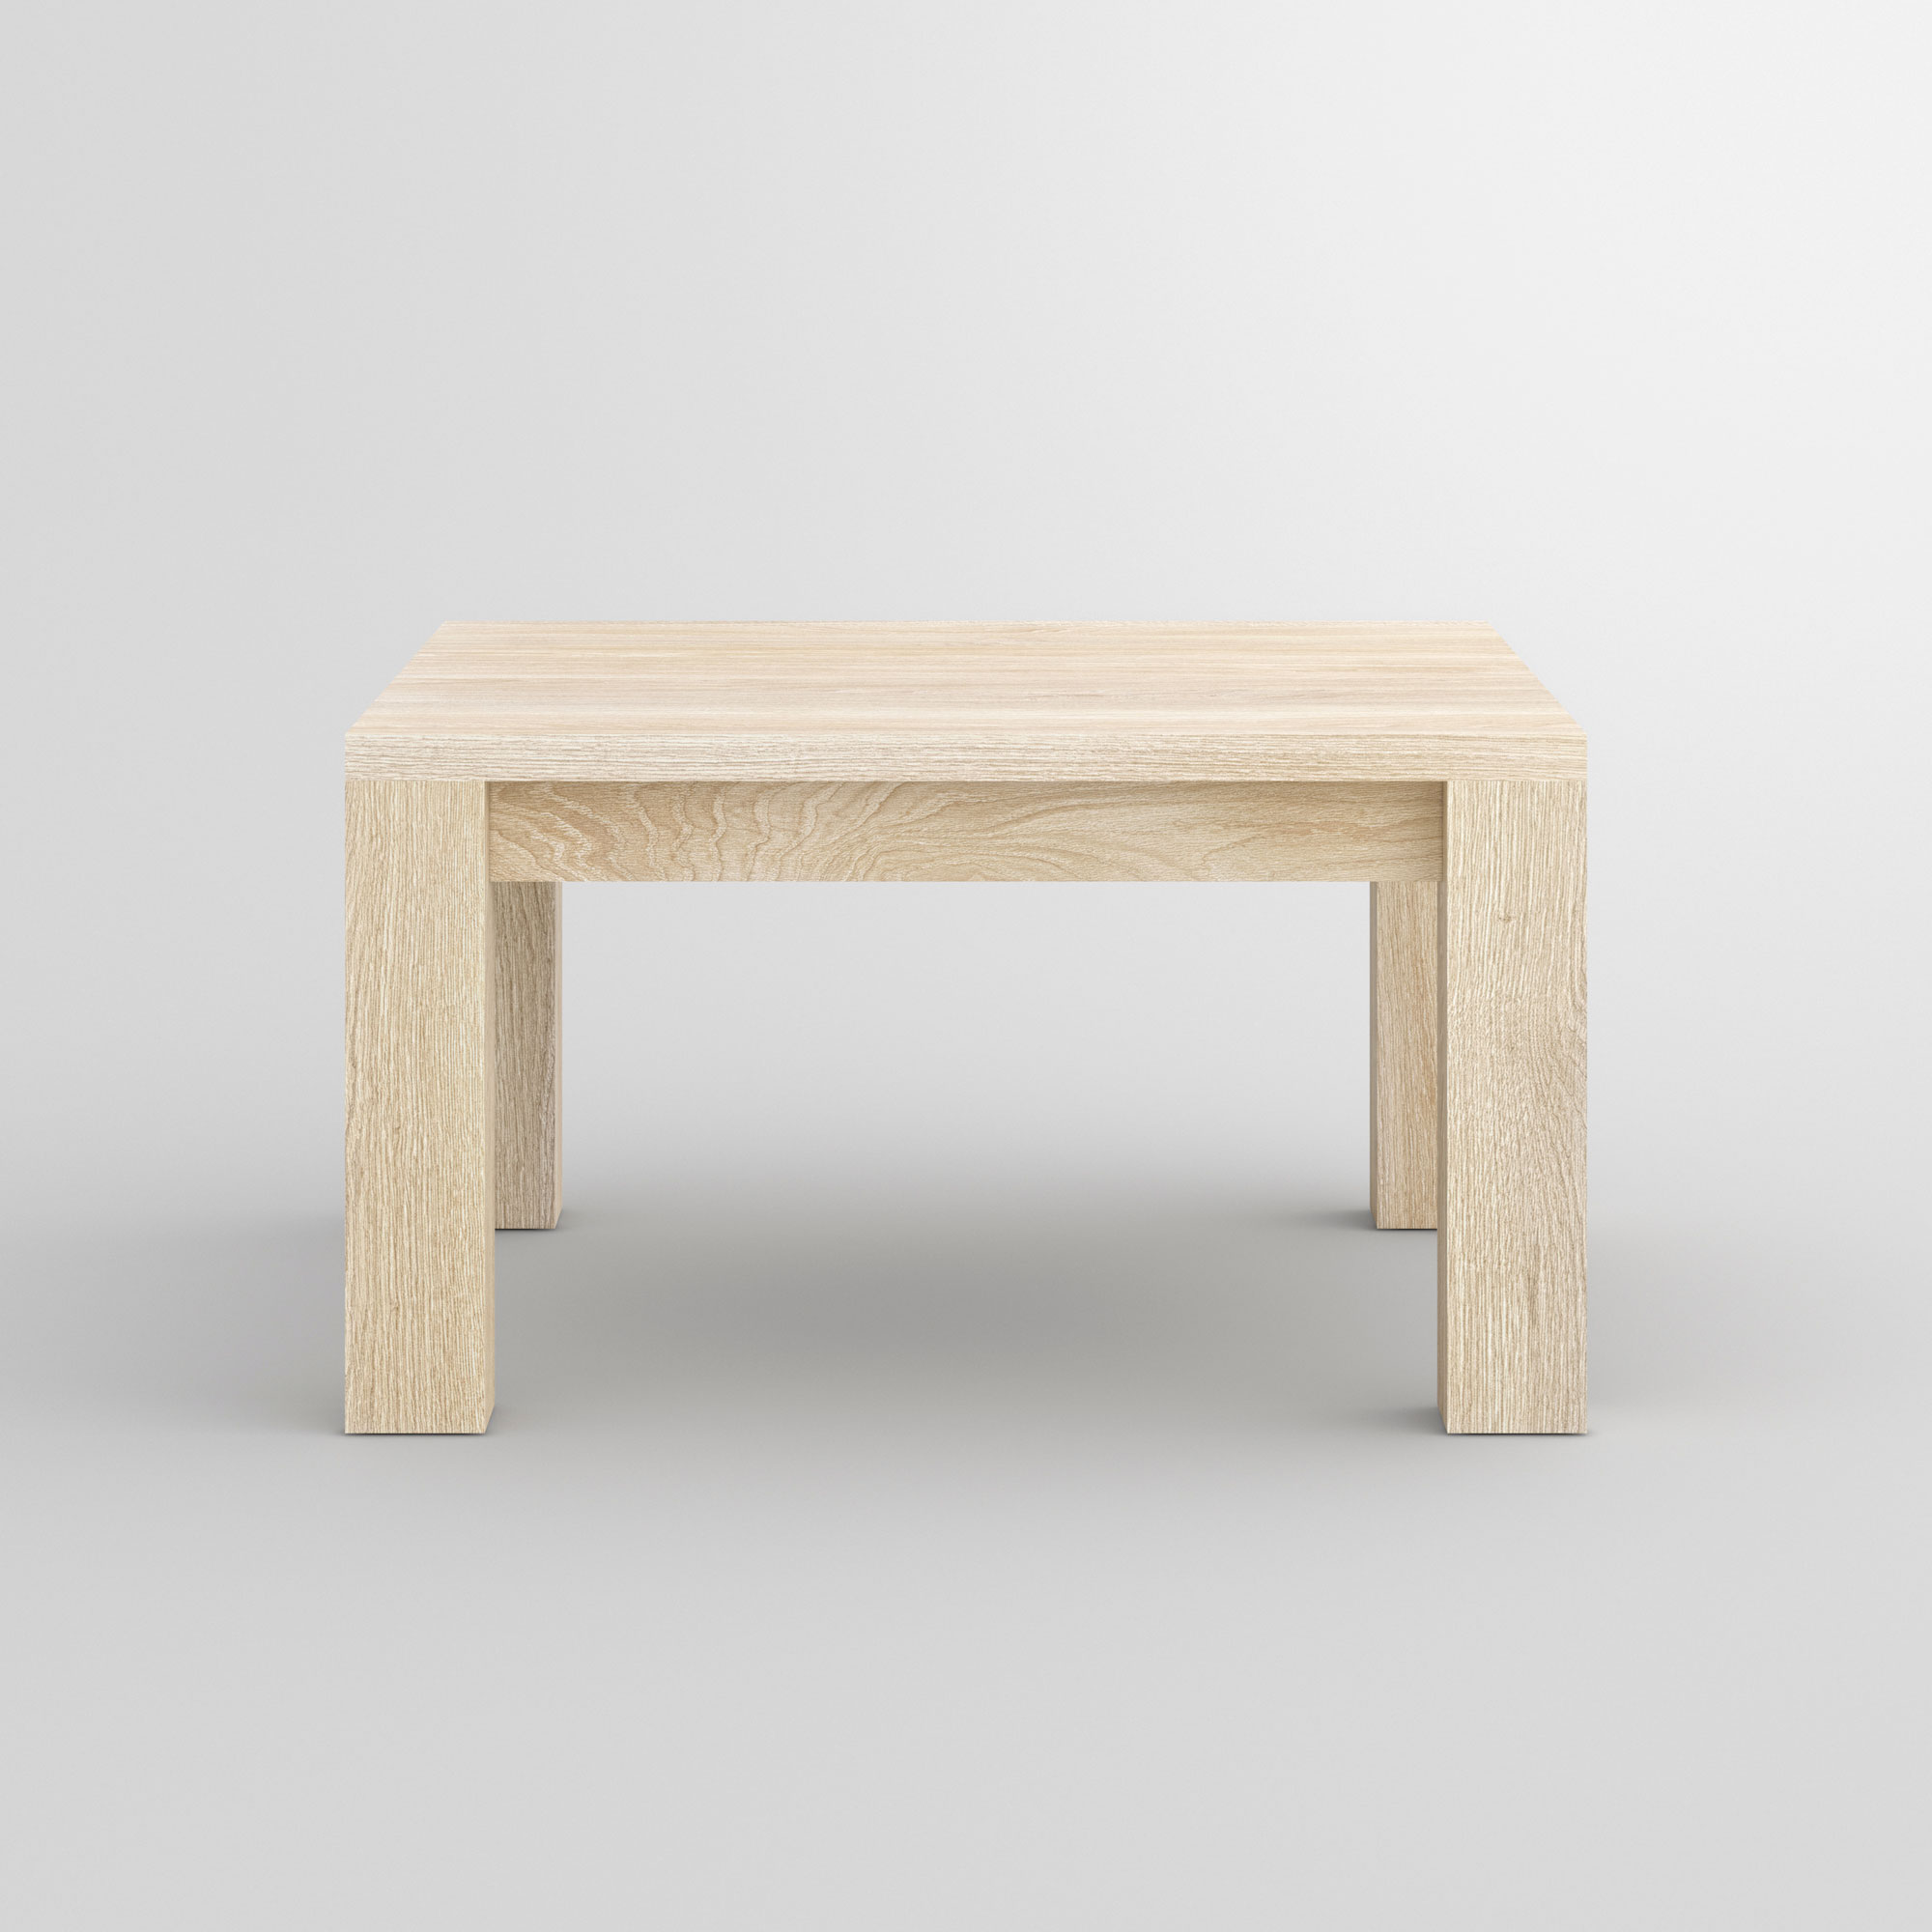 Coffee Table in Oak CUBUS cam2 custom made in solid wood by vitamin design